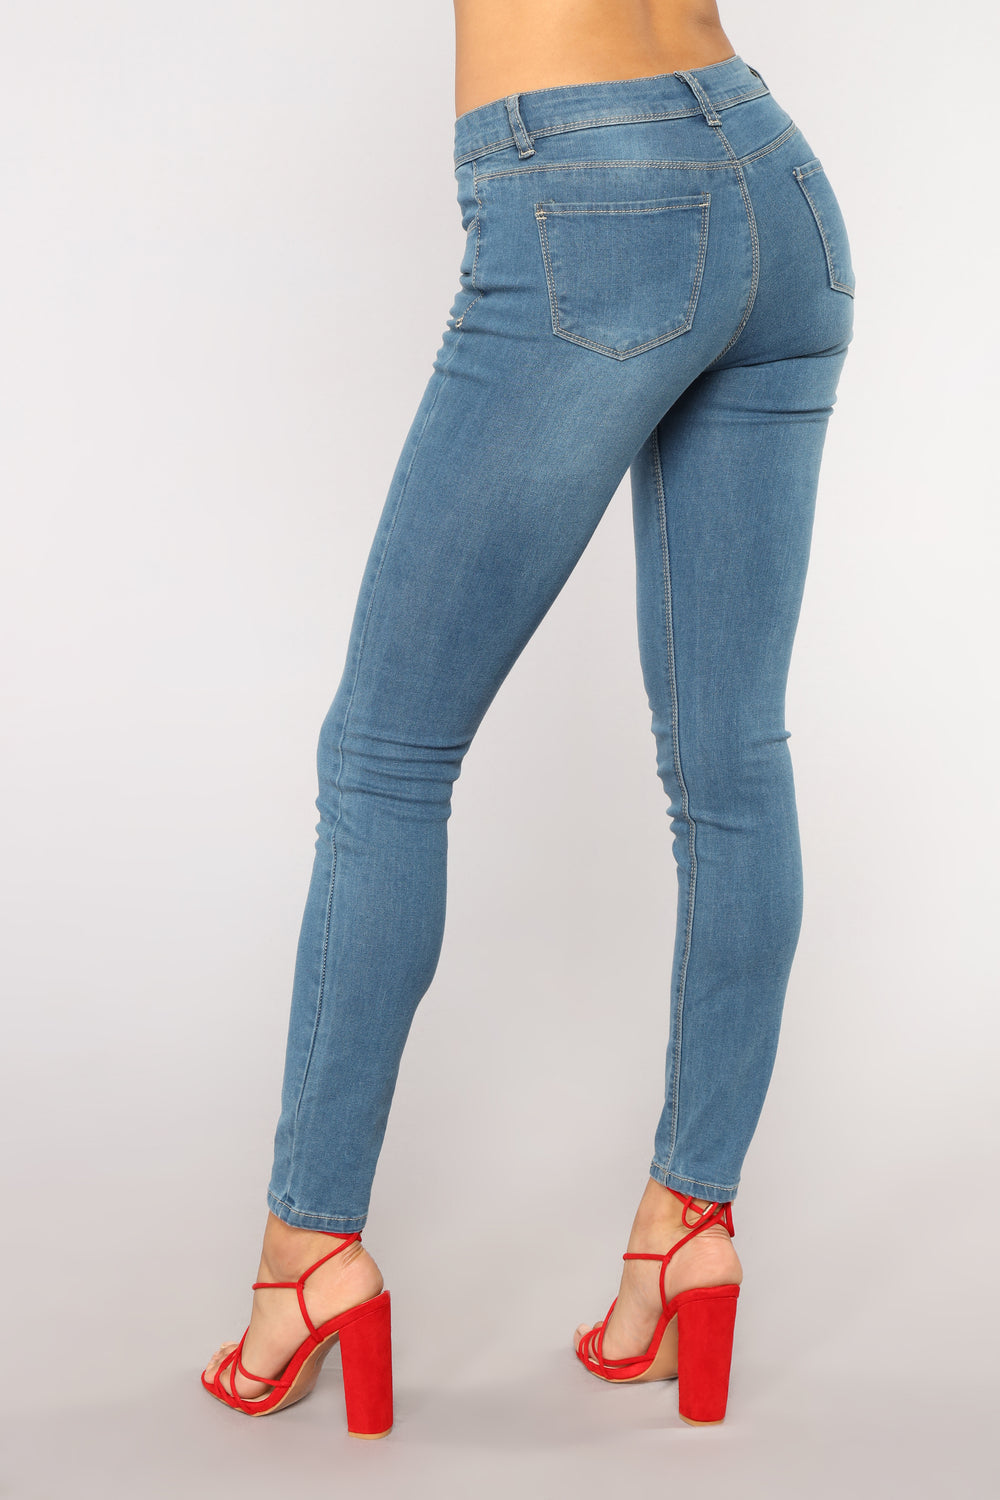 Too Close Skinny Jeans - Medium Blue Wash